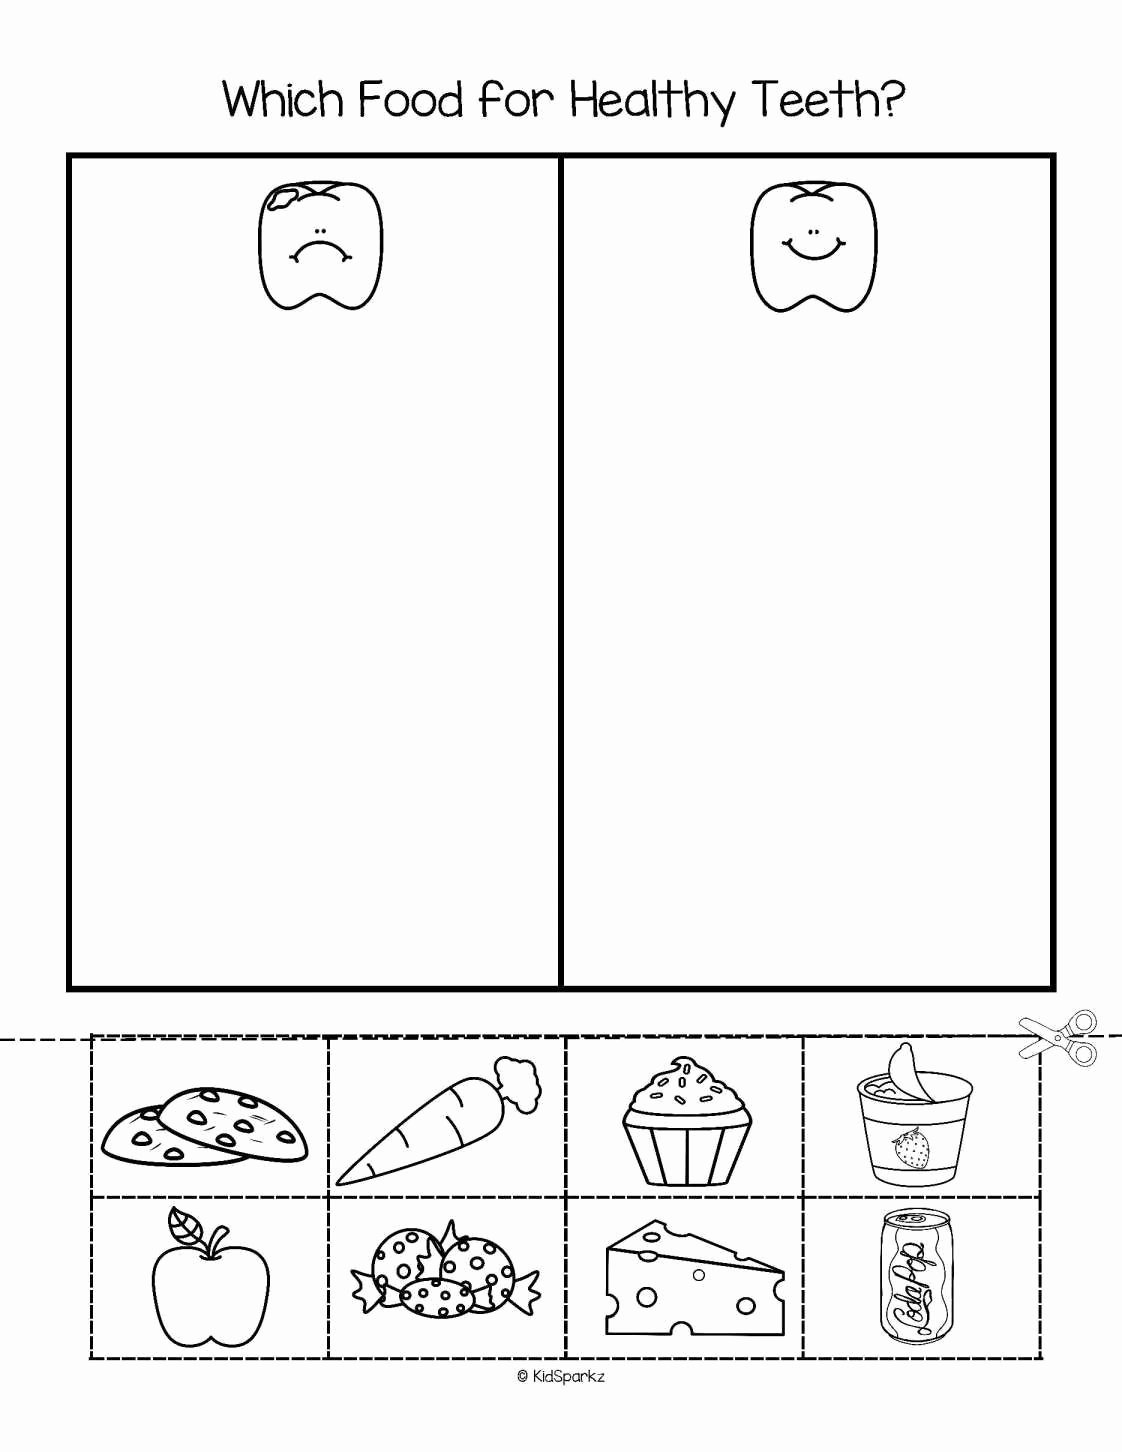 Worksheets for Preschoolers About Teeth Printable 12 Teeth Worksheet Preschool